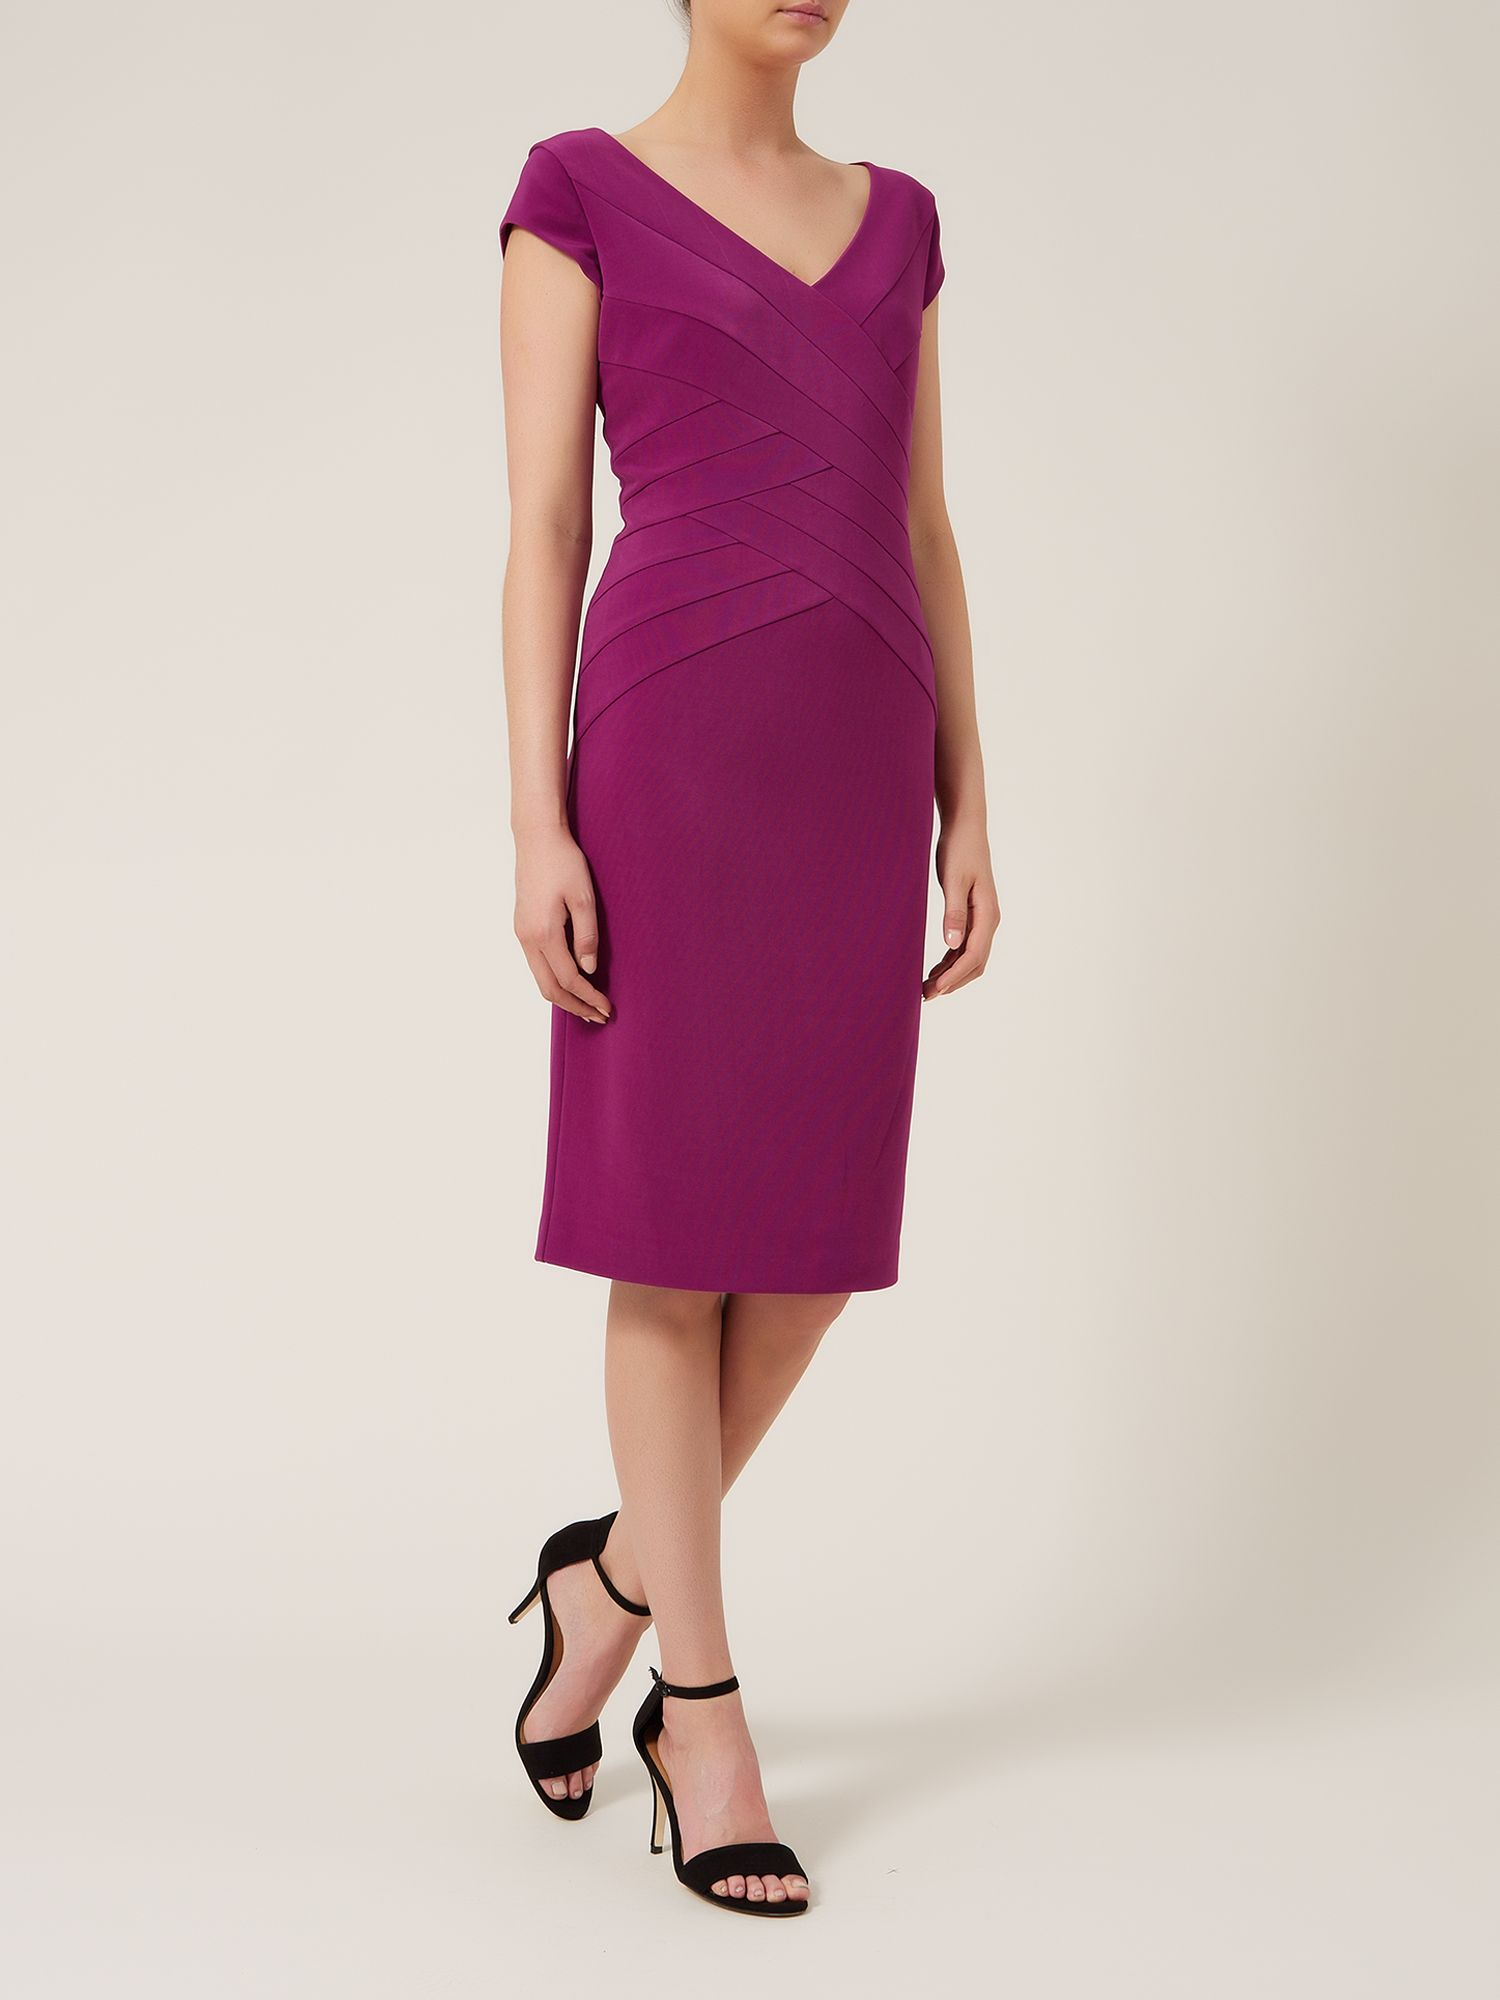 Fuchsia Bandage Dress